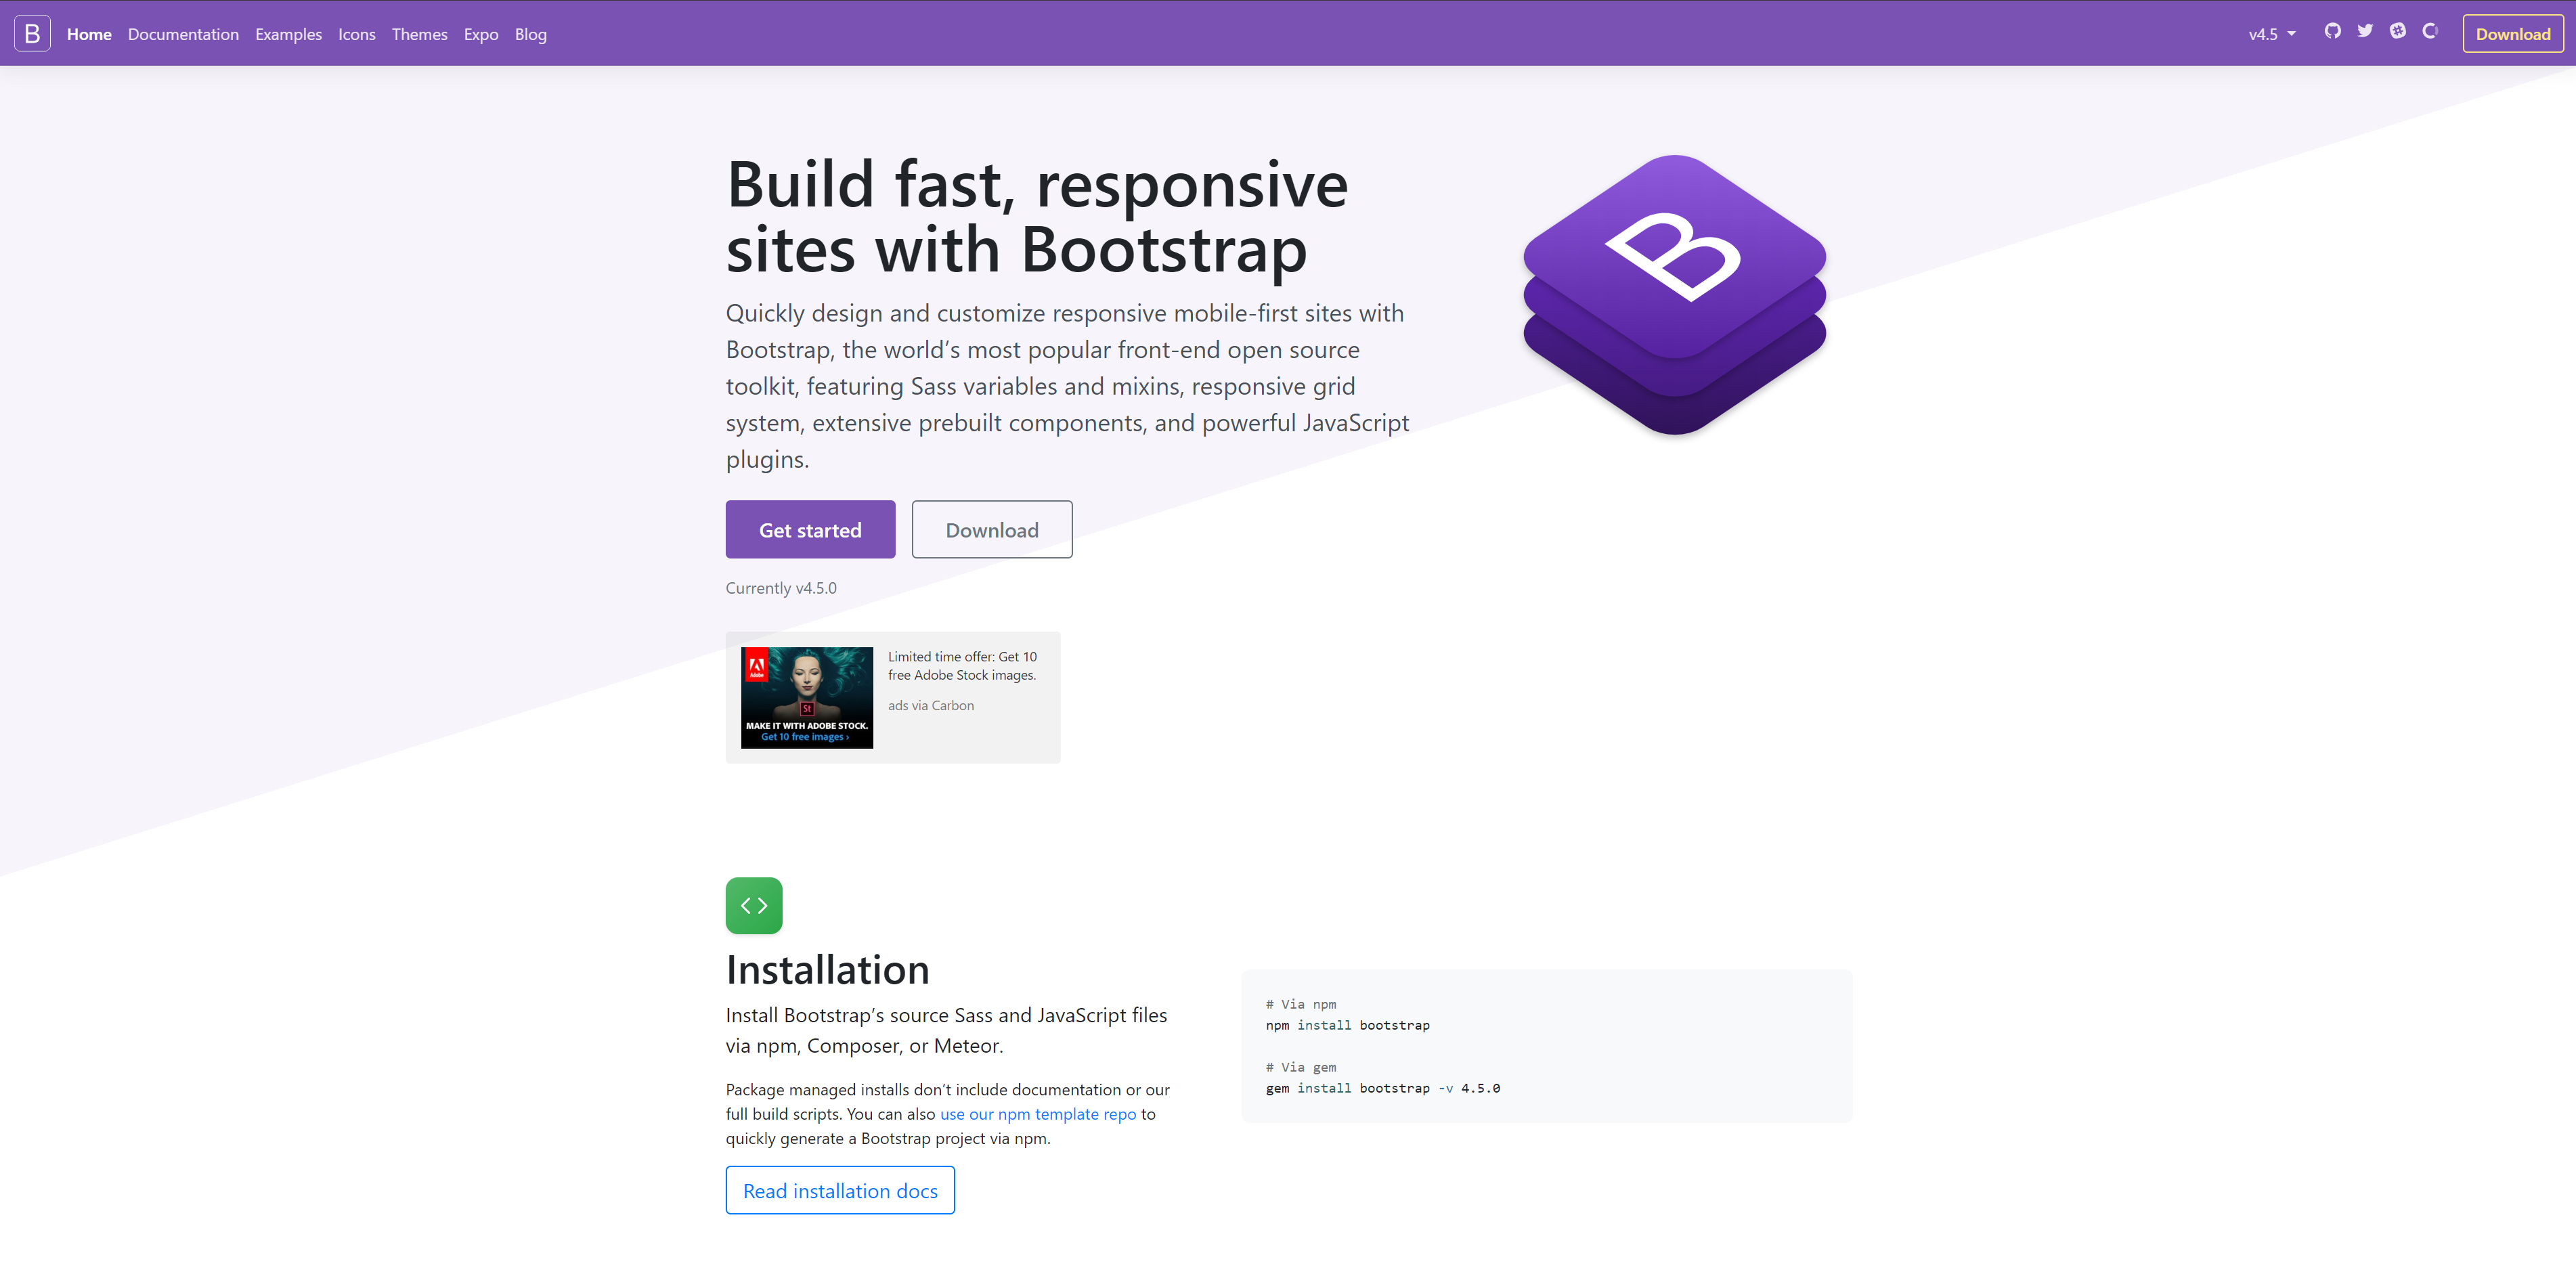 The landing page of Bootstrap. a front-end development framework